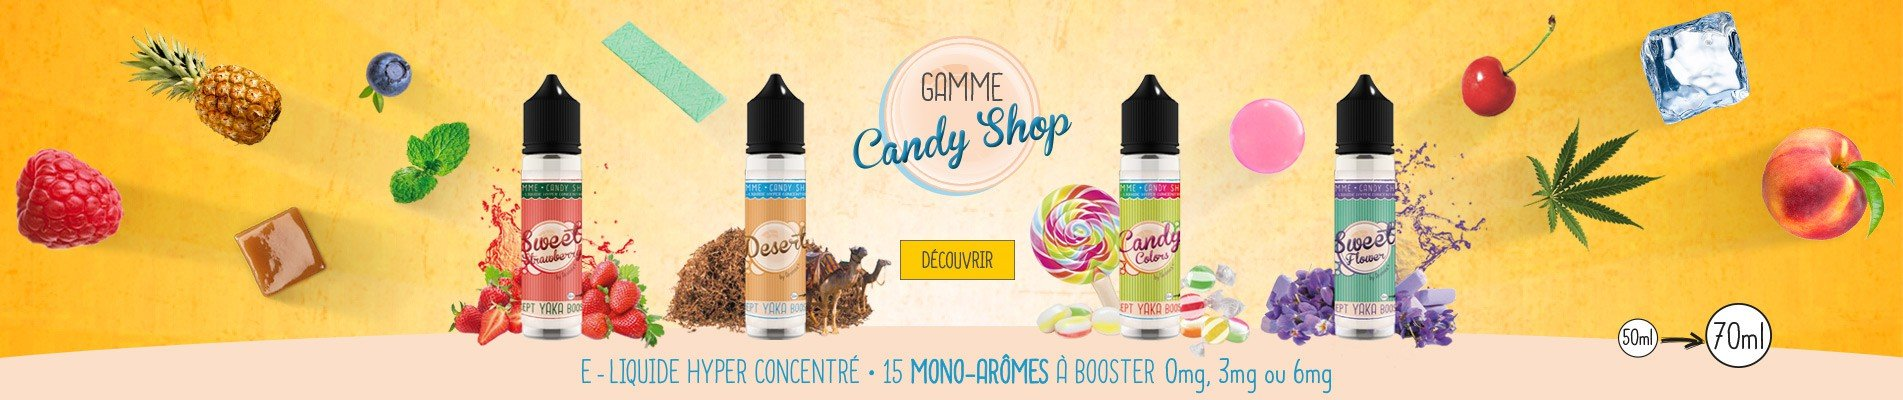 E-liquide Candy Shop 50ml à booster